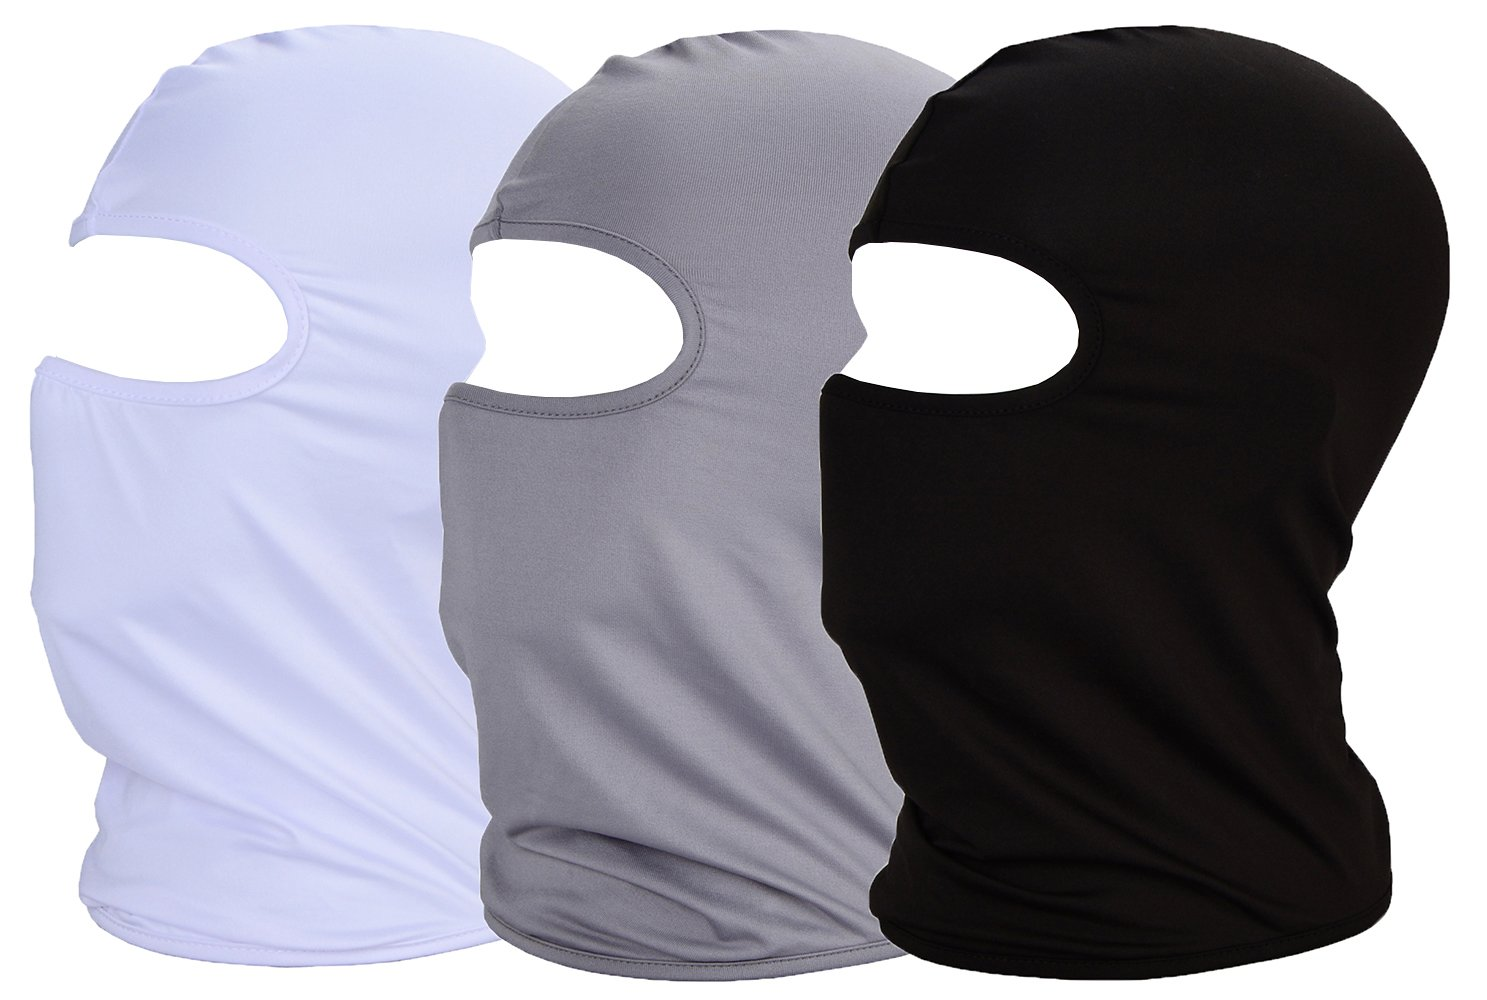 MAYOUTH UV//sun Dust protection Balaclava summer Face Mask Thin Breathable Elastic Fabric Windproof Cycling Sports Outdoor Full Face Mask 3-pack Gift Present